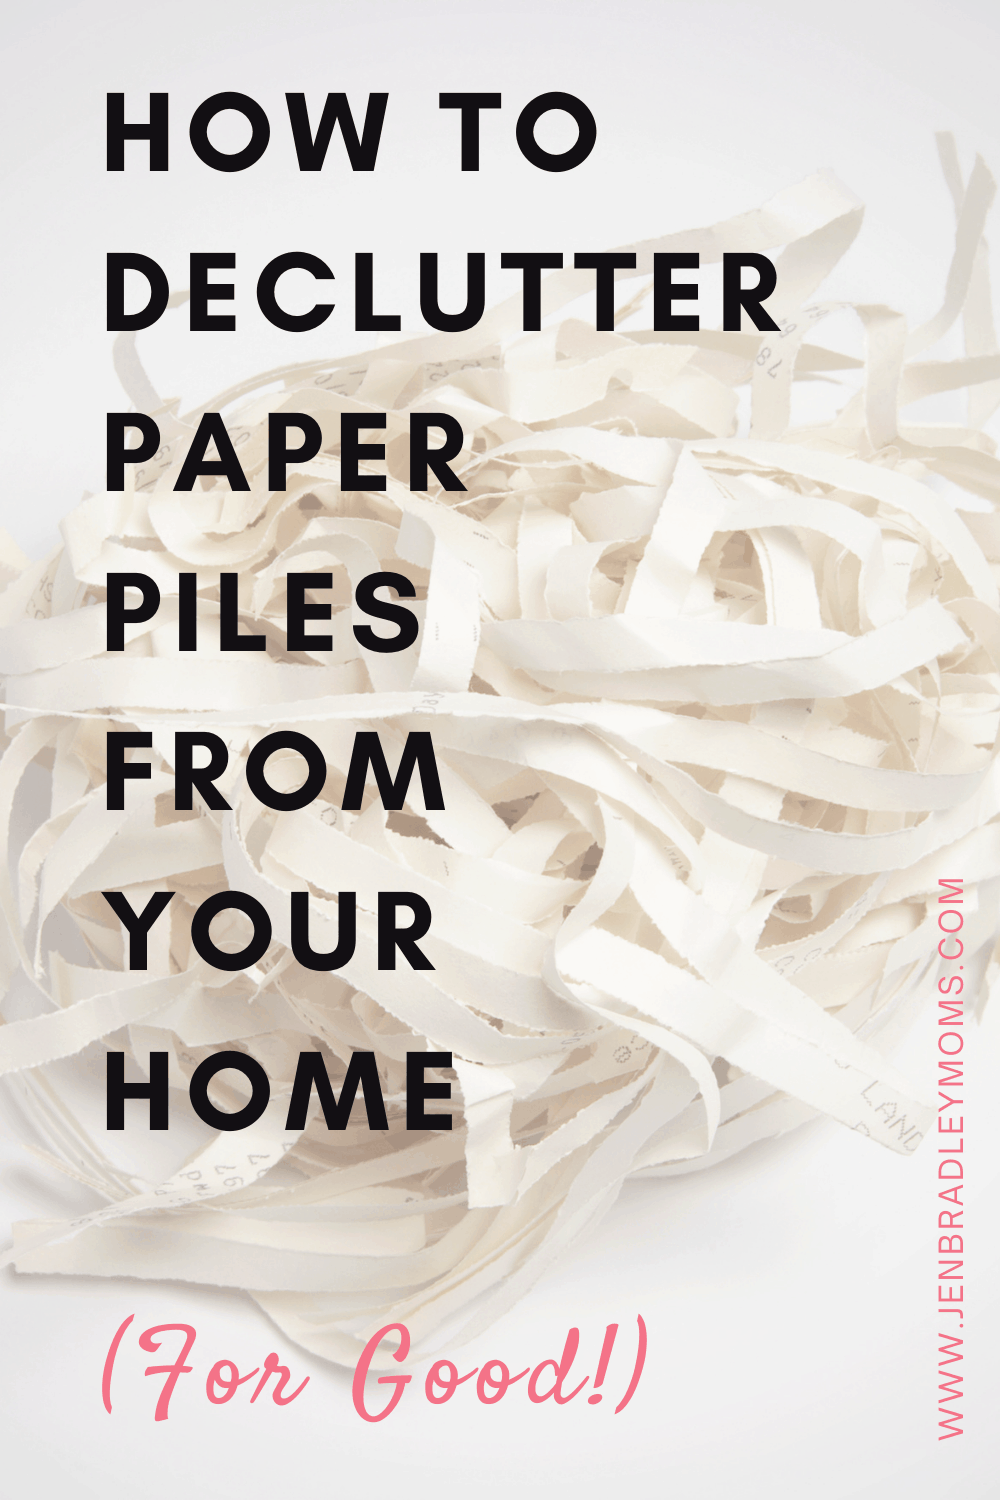 How to Declutter Paper - The Awesome Step-by-Step Guide